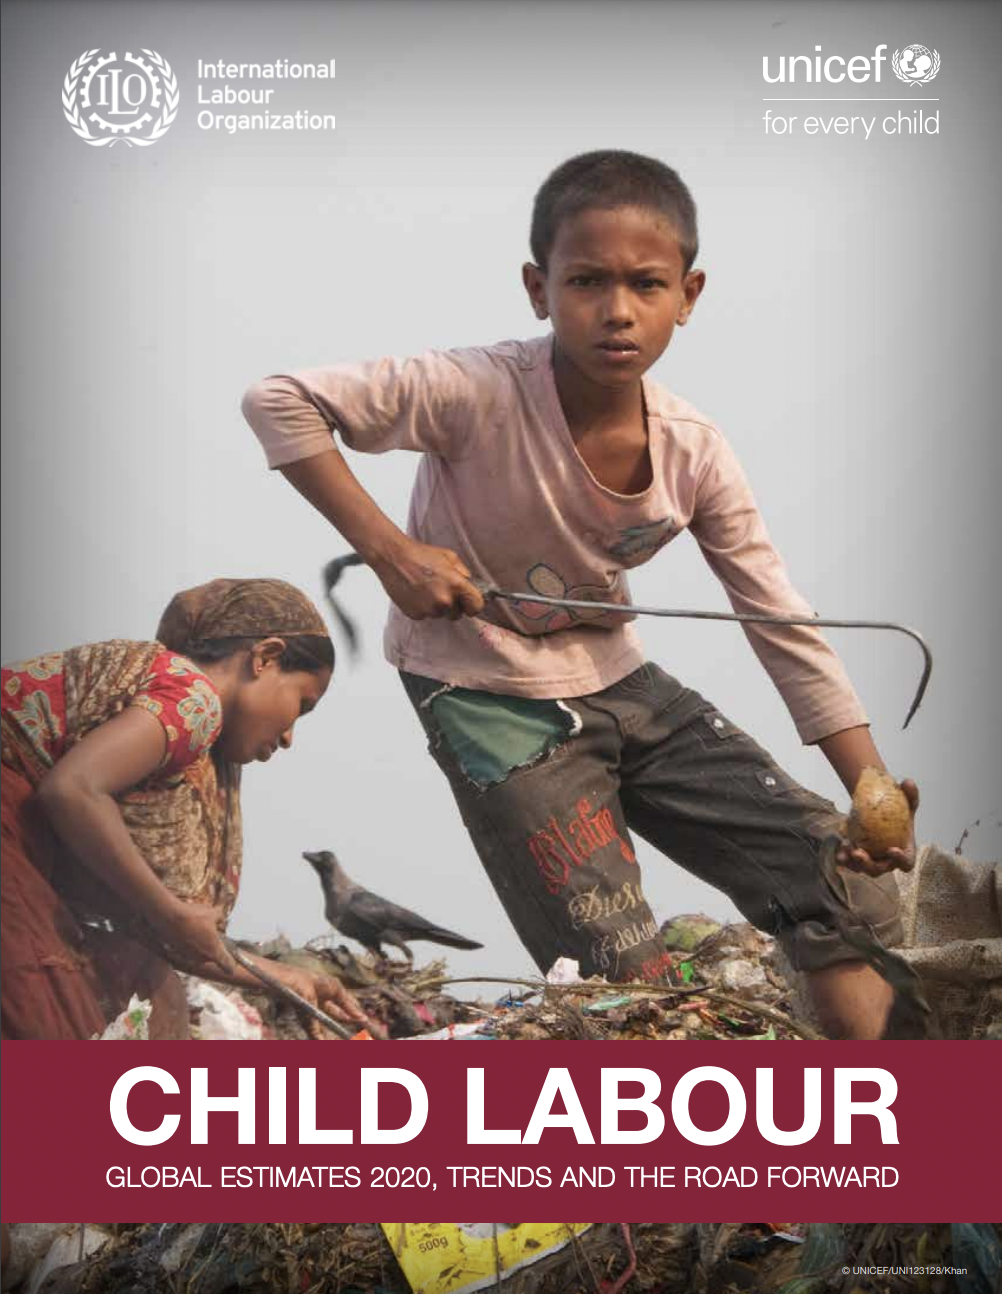 Child Labour: Global Estimates 2020, Trends and the Road Forward